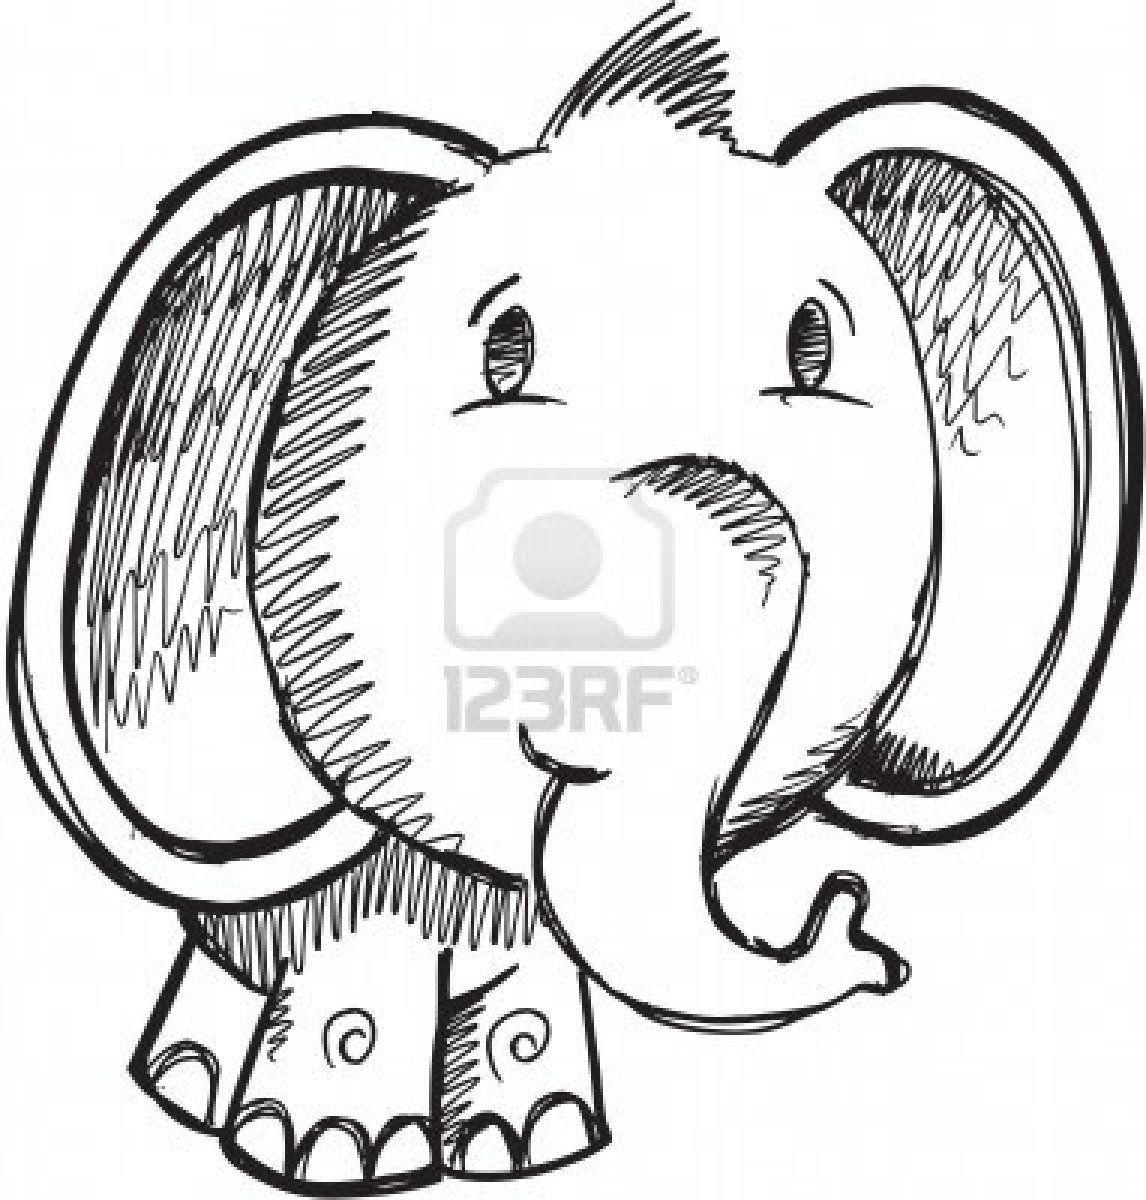 Drawing Doodles Sketches elephant doodle - Google Search - 123RF - Millions of Creative Stock Photos, Vectors, Videos and Music Files For Your Inspiration and Projects.